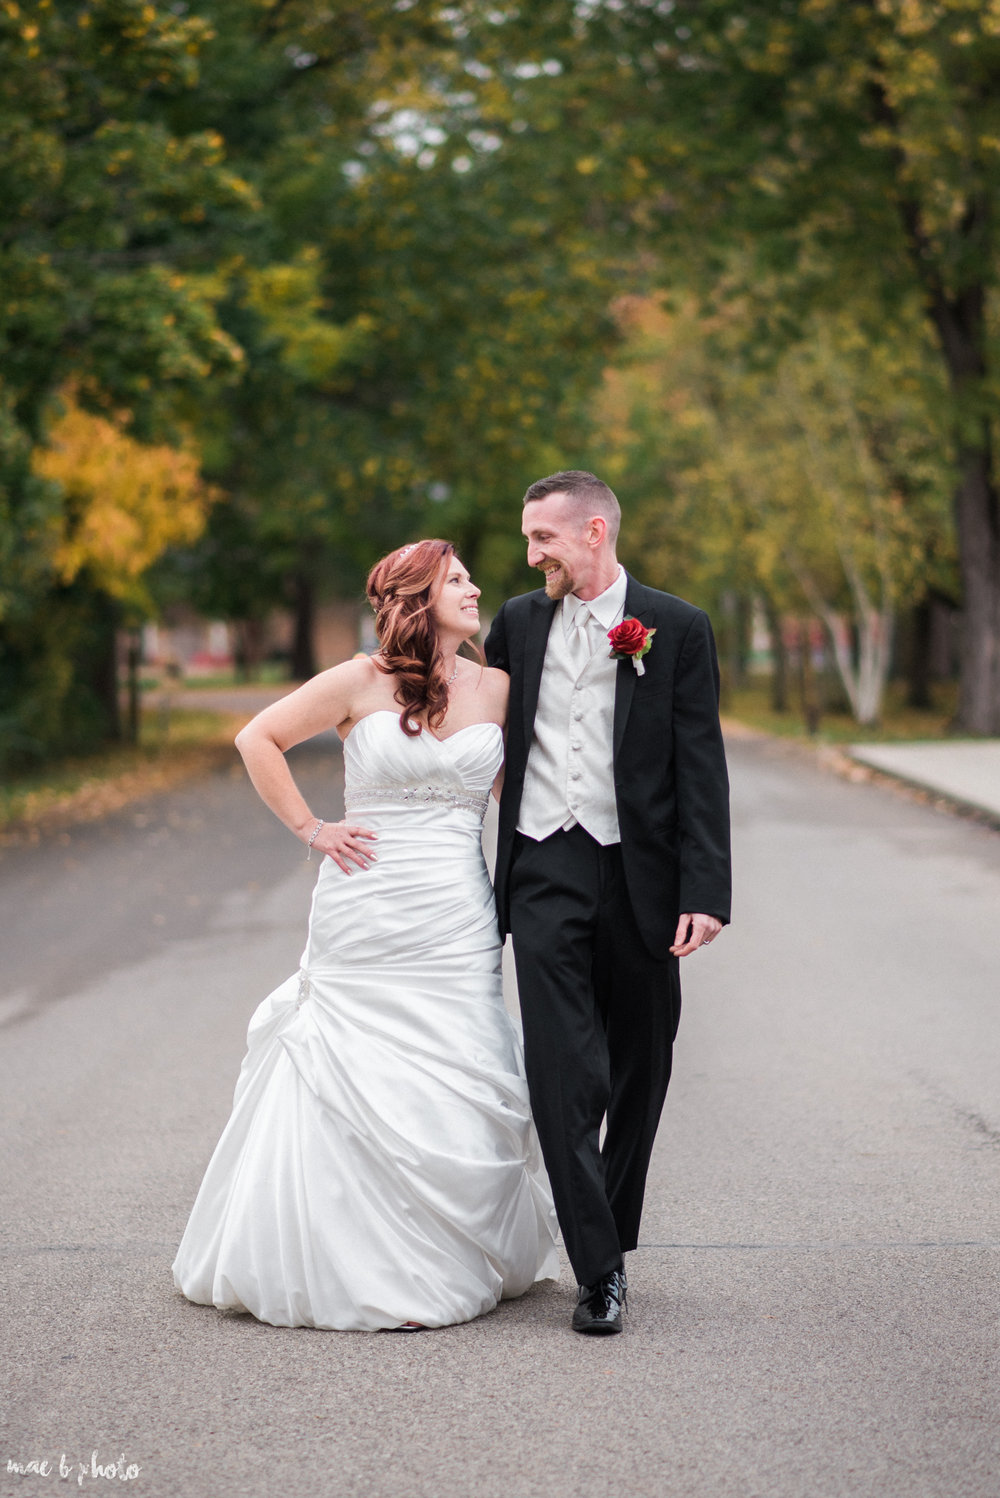 Tracey & Aaron's Personal Fall Wedding at Tiffany's Banquet Center in Brookfield, Ohio Photographed by Mae B Photo-6.jpg